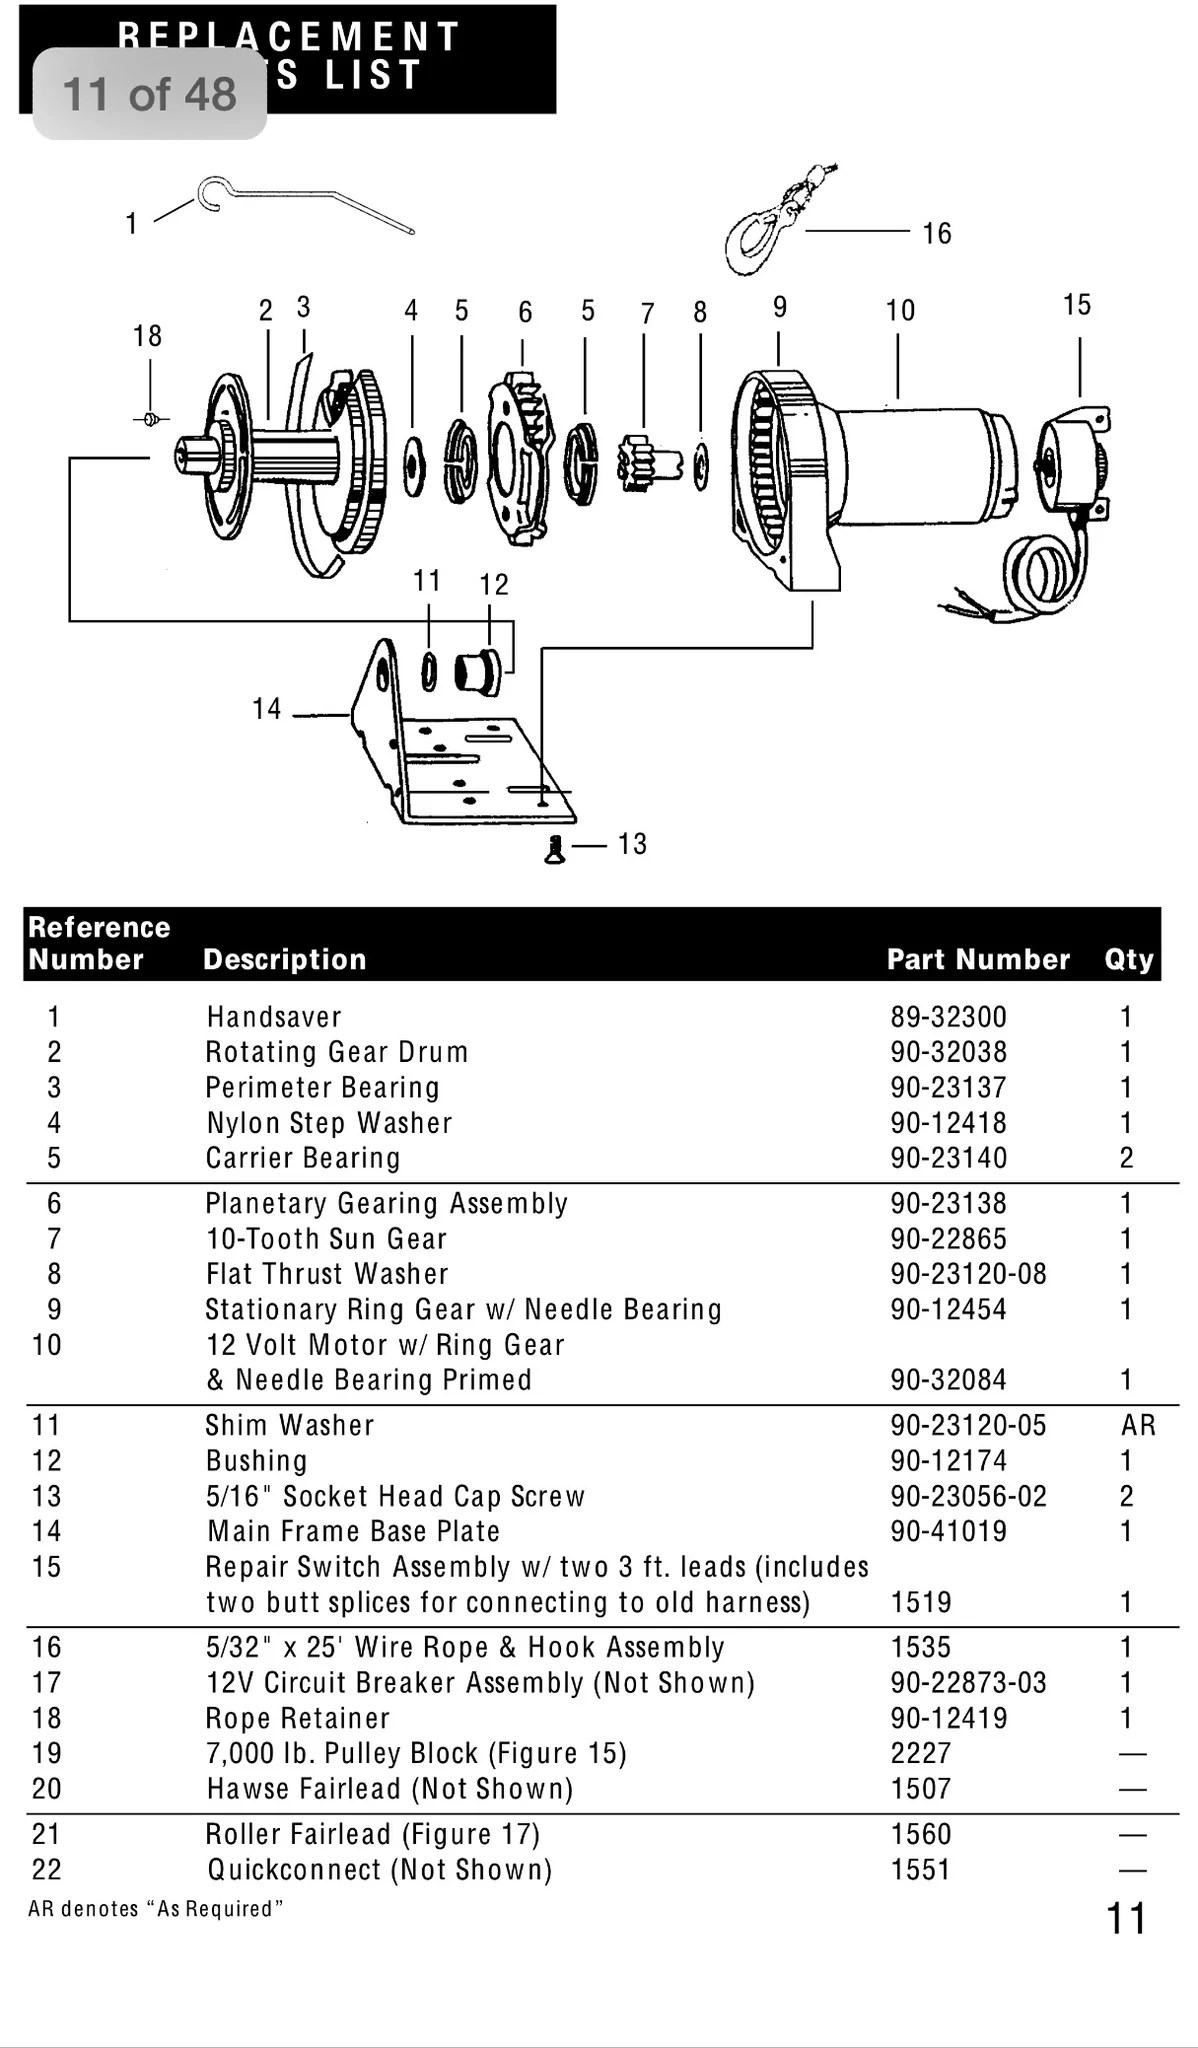 hight resolution of superwinch replacement motor for ex1 superwinch atv wiring diagram superwinch parts diagram